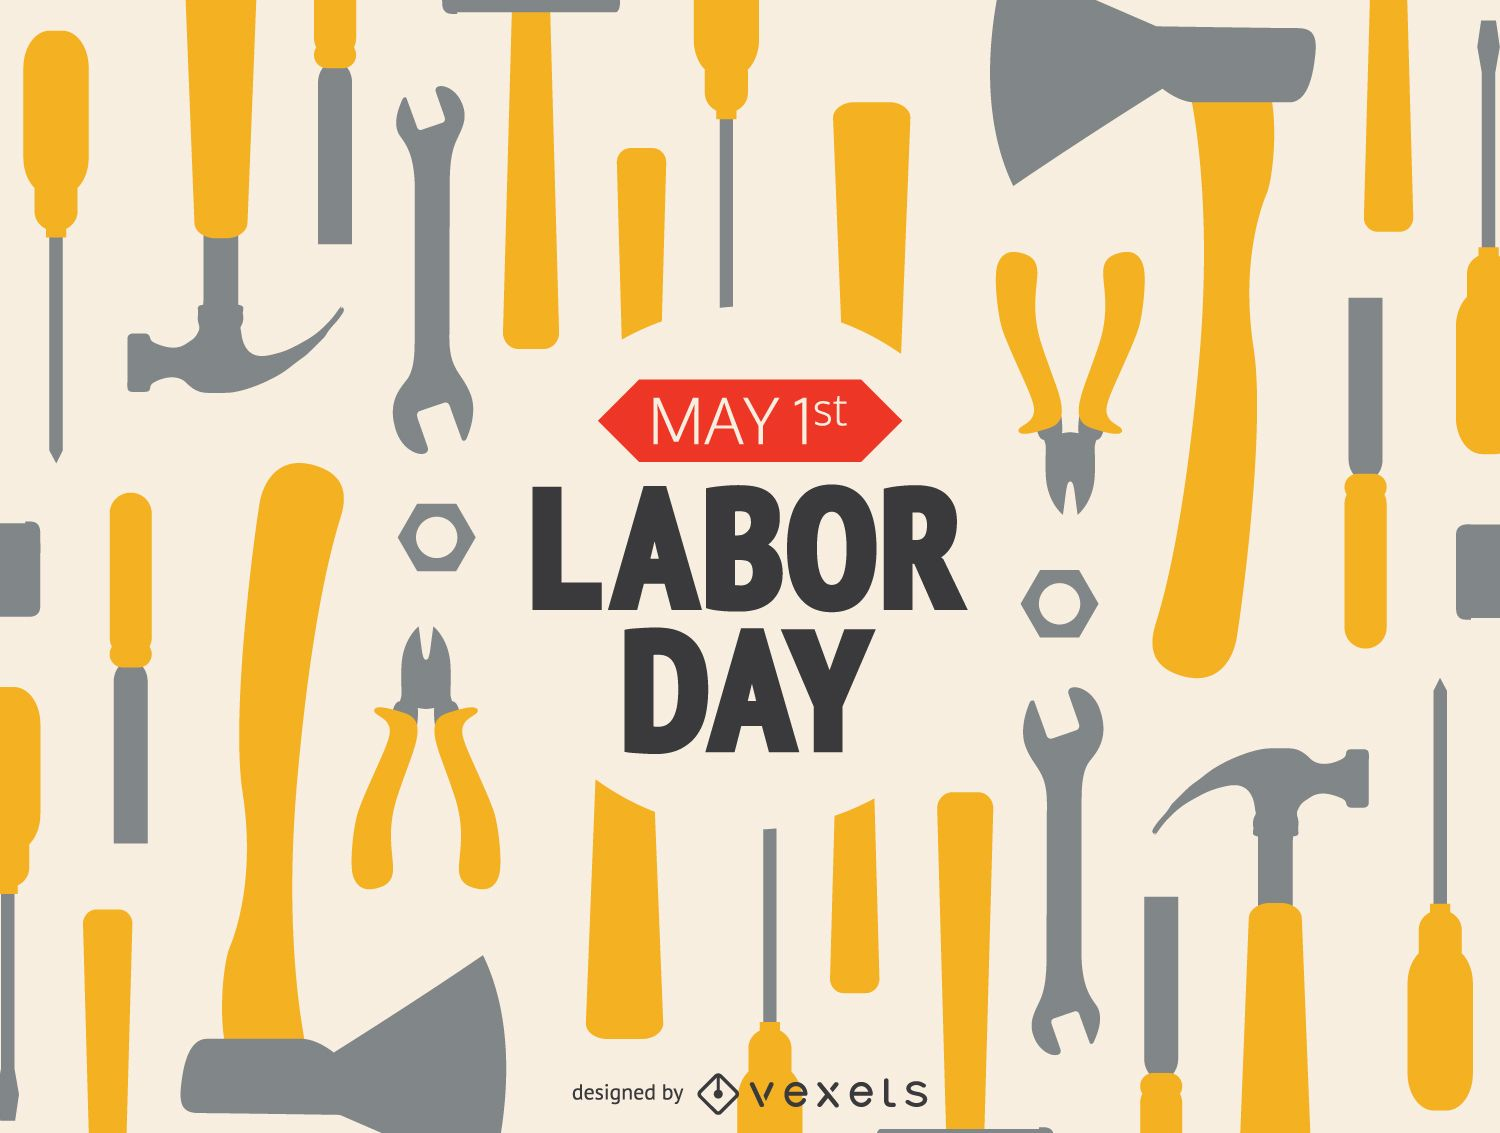 Labor day working tools with message vector download labor day working tools with message download large image 1601x1210px kristyandbryce Image collections